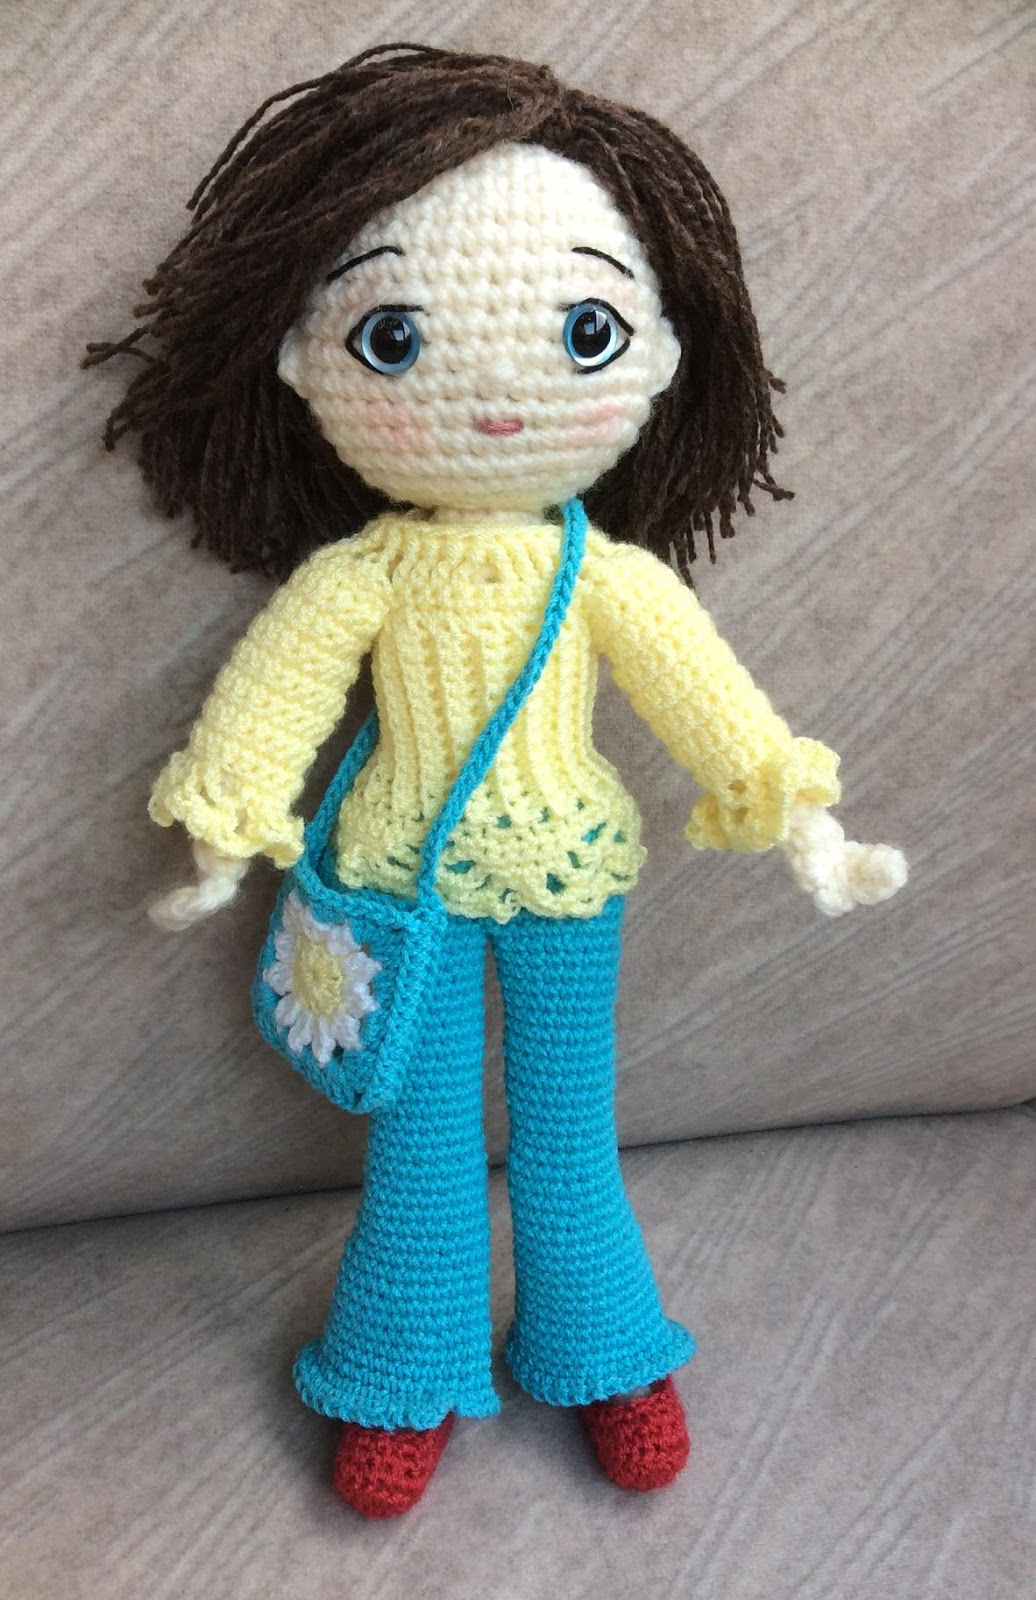 Amigurumi Doll How To : The moody homemaker another crochet amigurumi doll